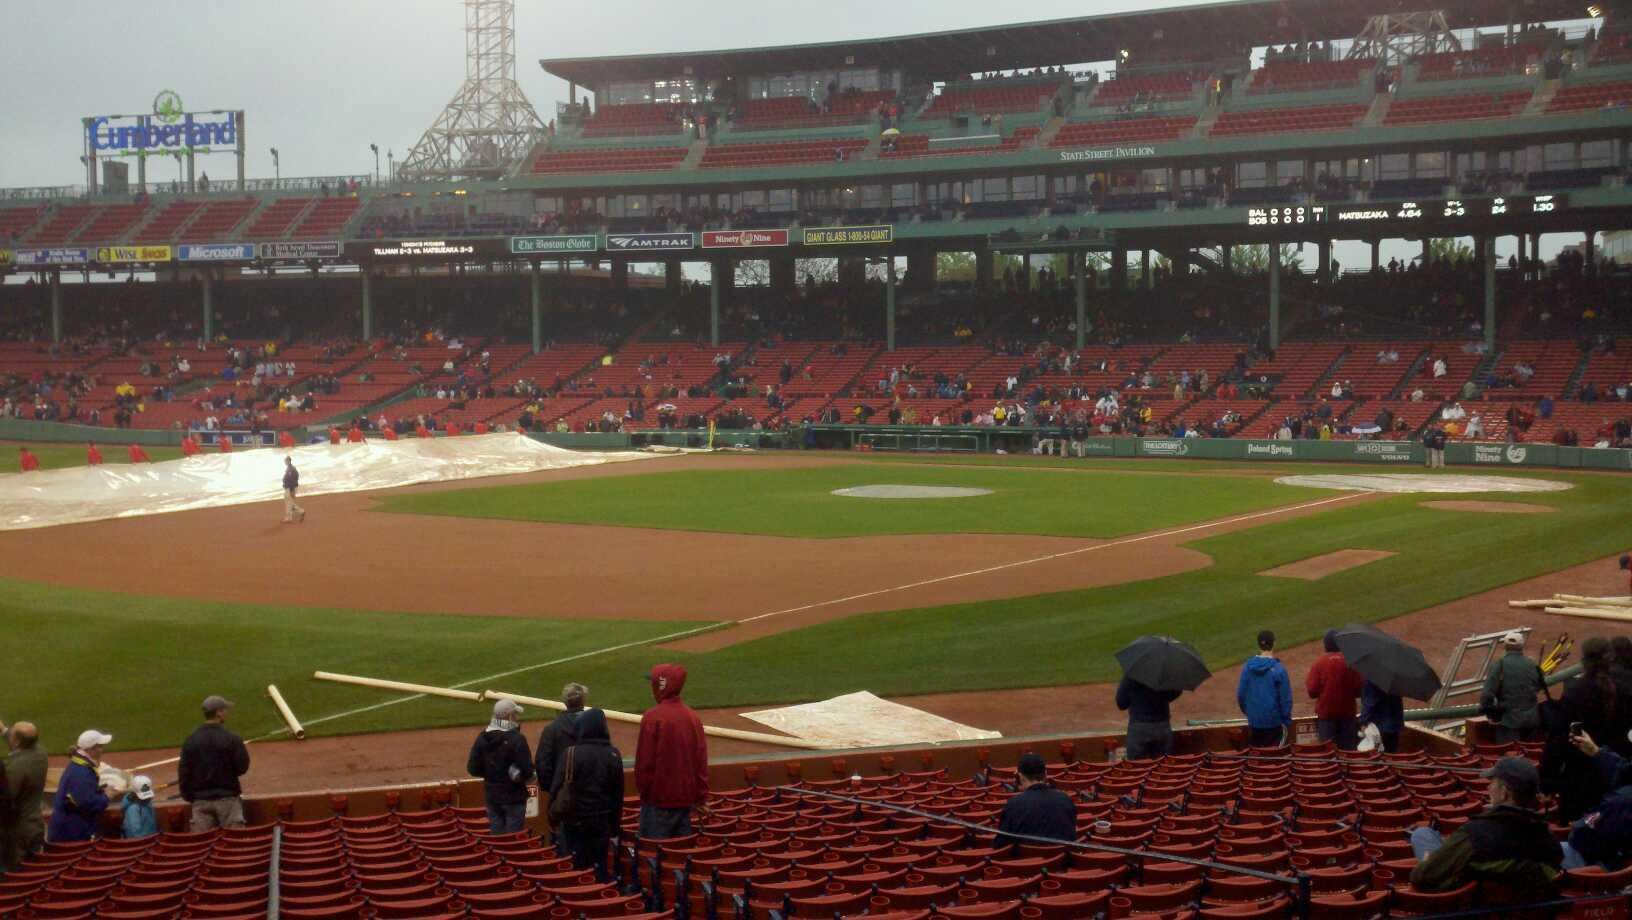 Fenway Park Section Loge Box 160 Row jj Seat 9